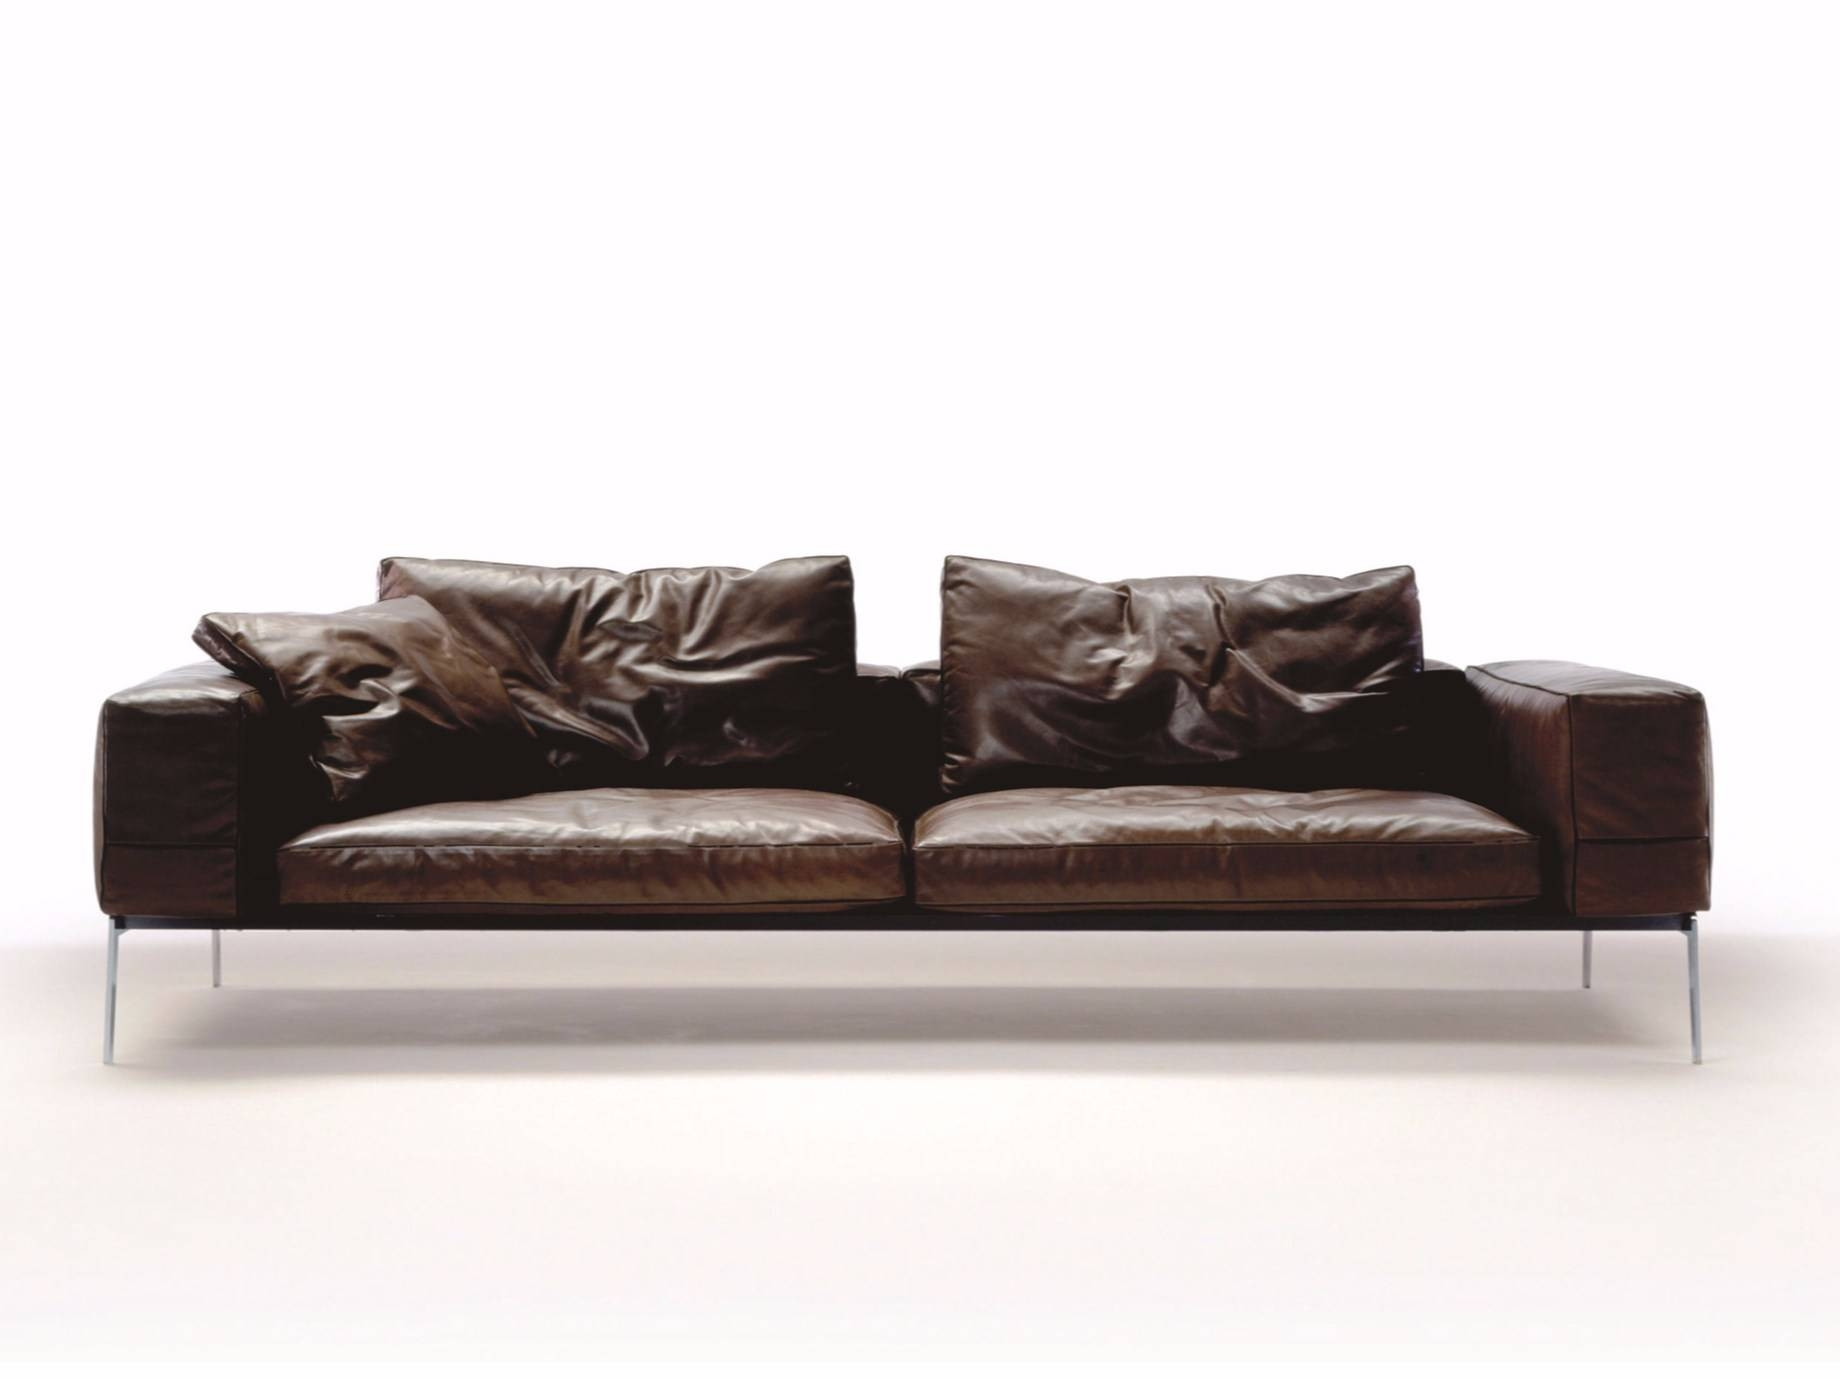 Flexform Sofas | Archiproducts intended for Flexform Sofas (Image 14 of 25)